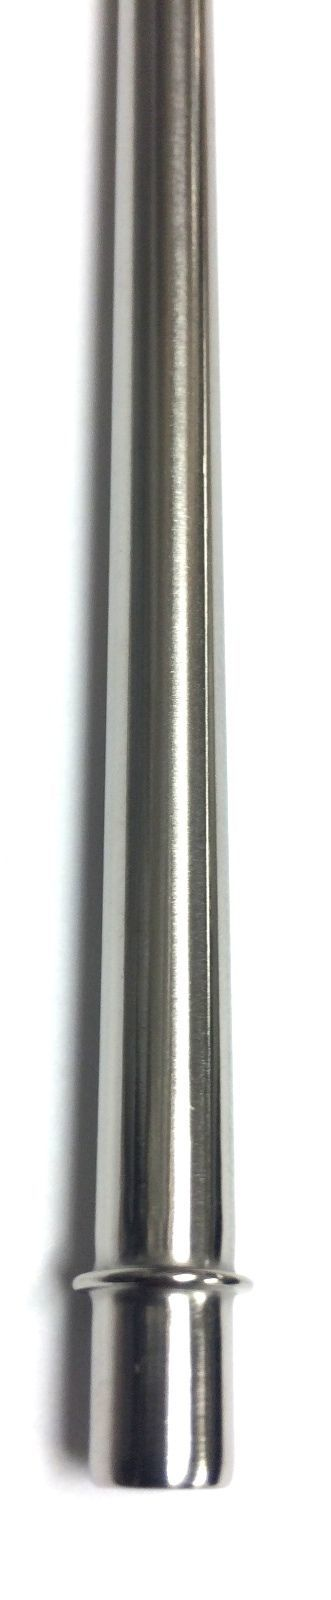 2 Replacement Straws Stainless Steel Reusable Washable Drinking Fits Starbucks